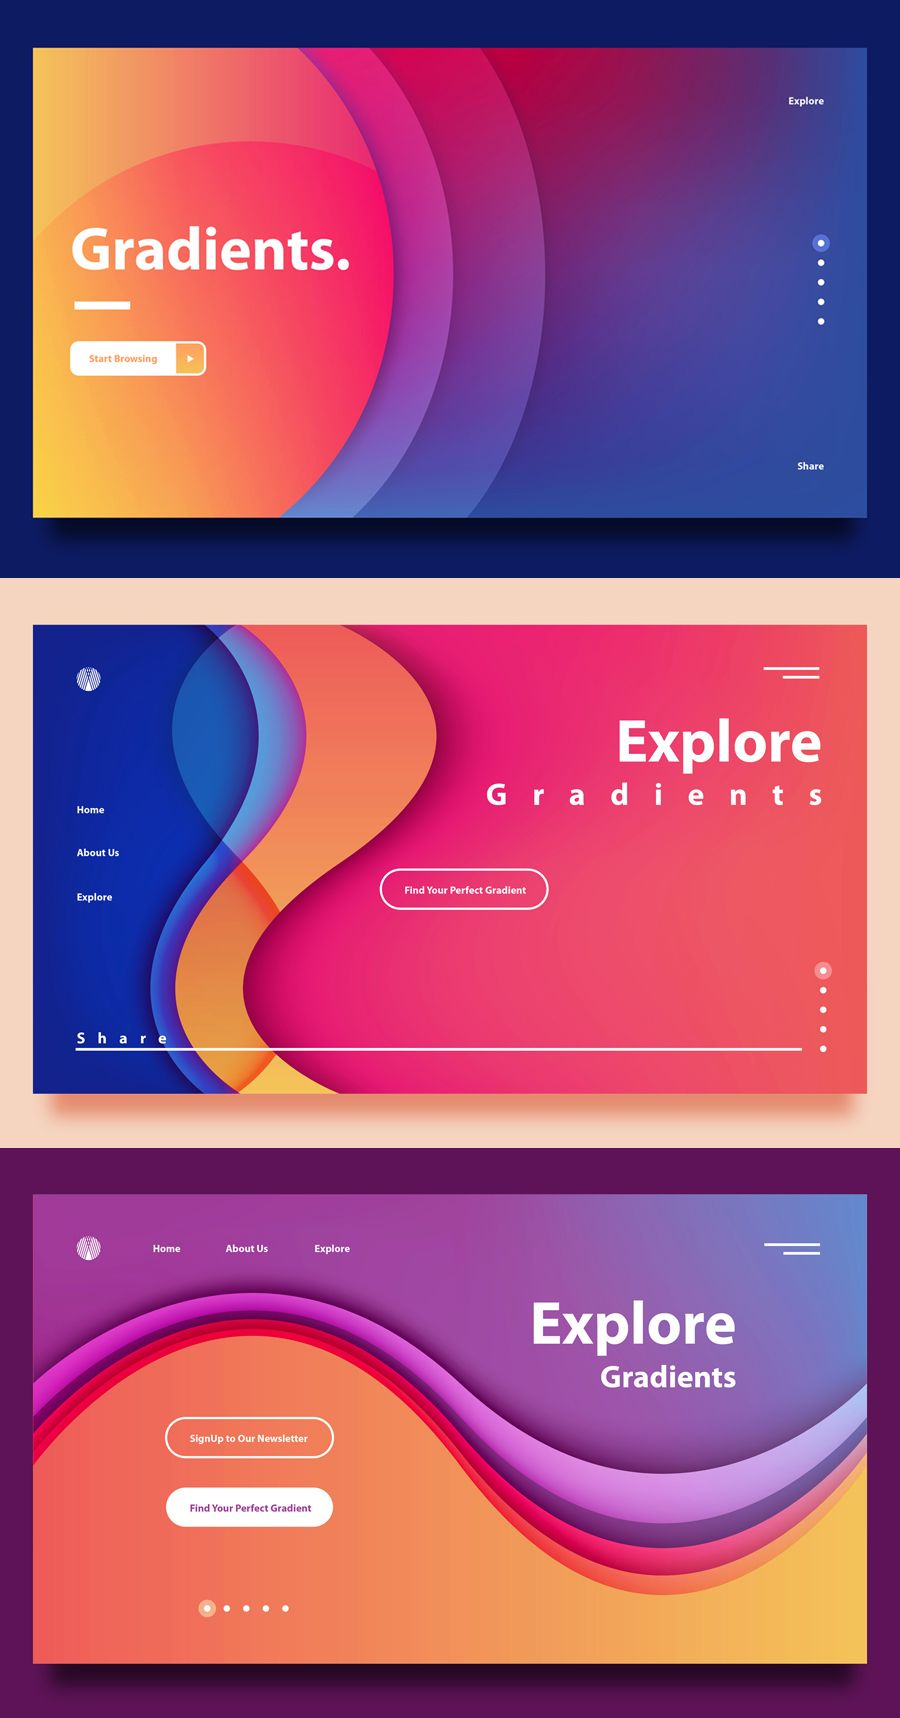 Landing Page Gradients -Gradient Backgrounds for Web Header Design